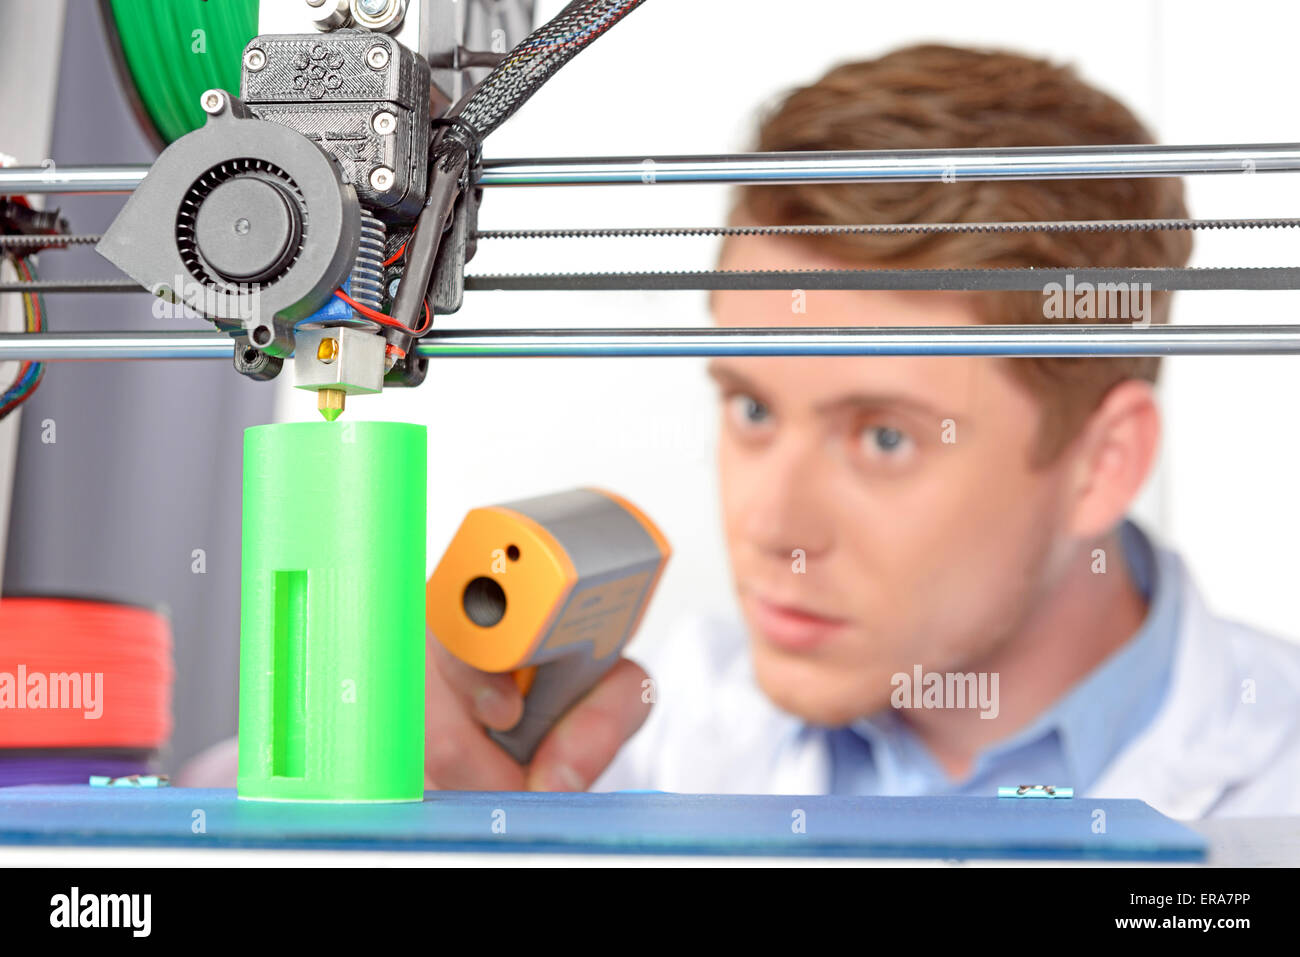 Scientist working with three-dimensional  printer - Stock Image